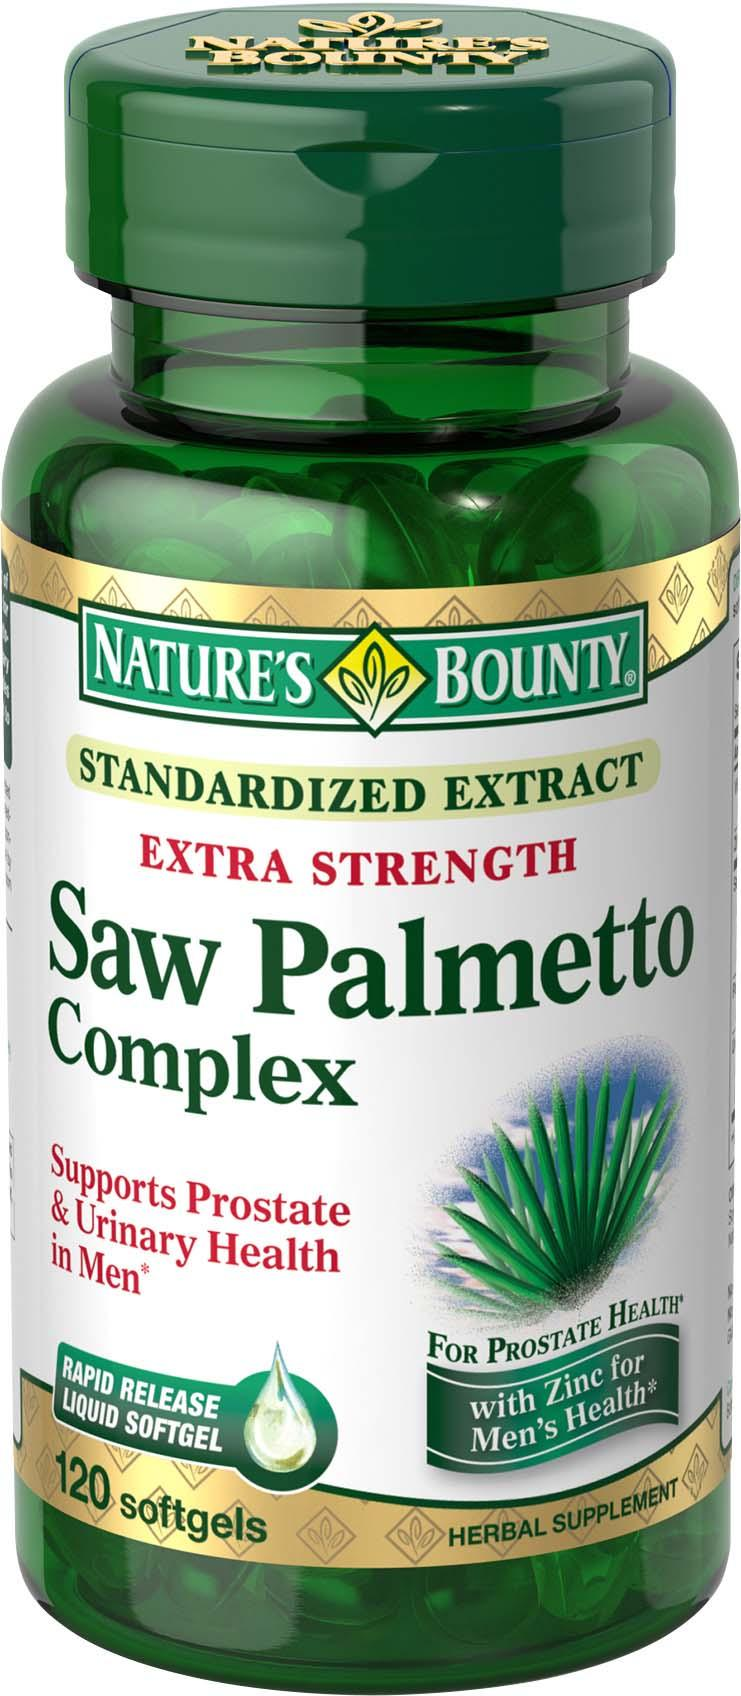 palmetto saw bounty strength health nature amazon extra complex natures softgels care maintains supports